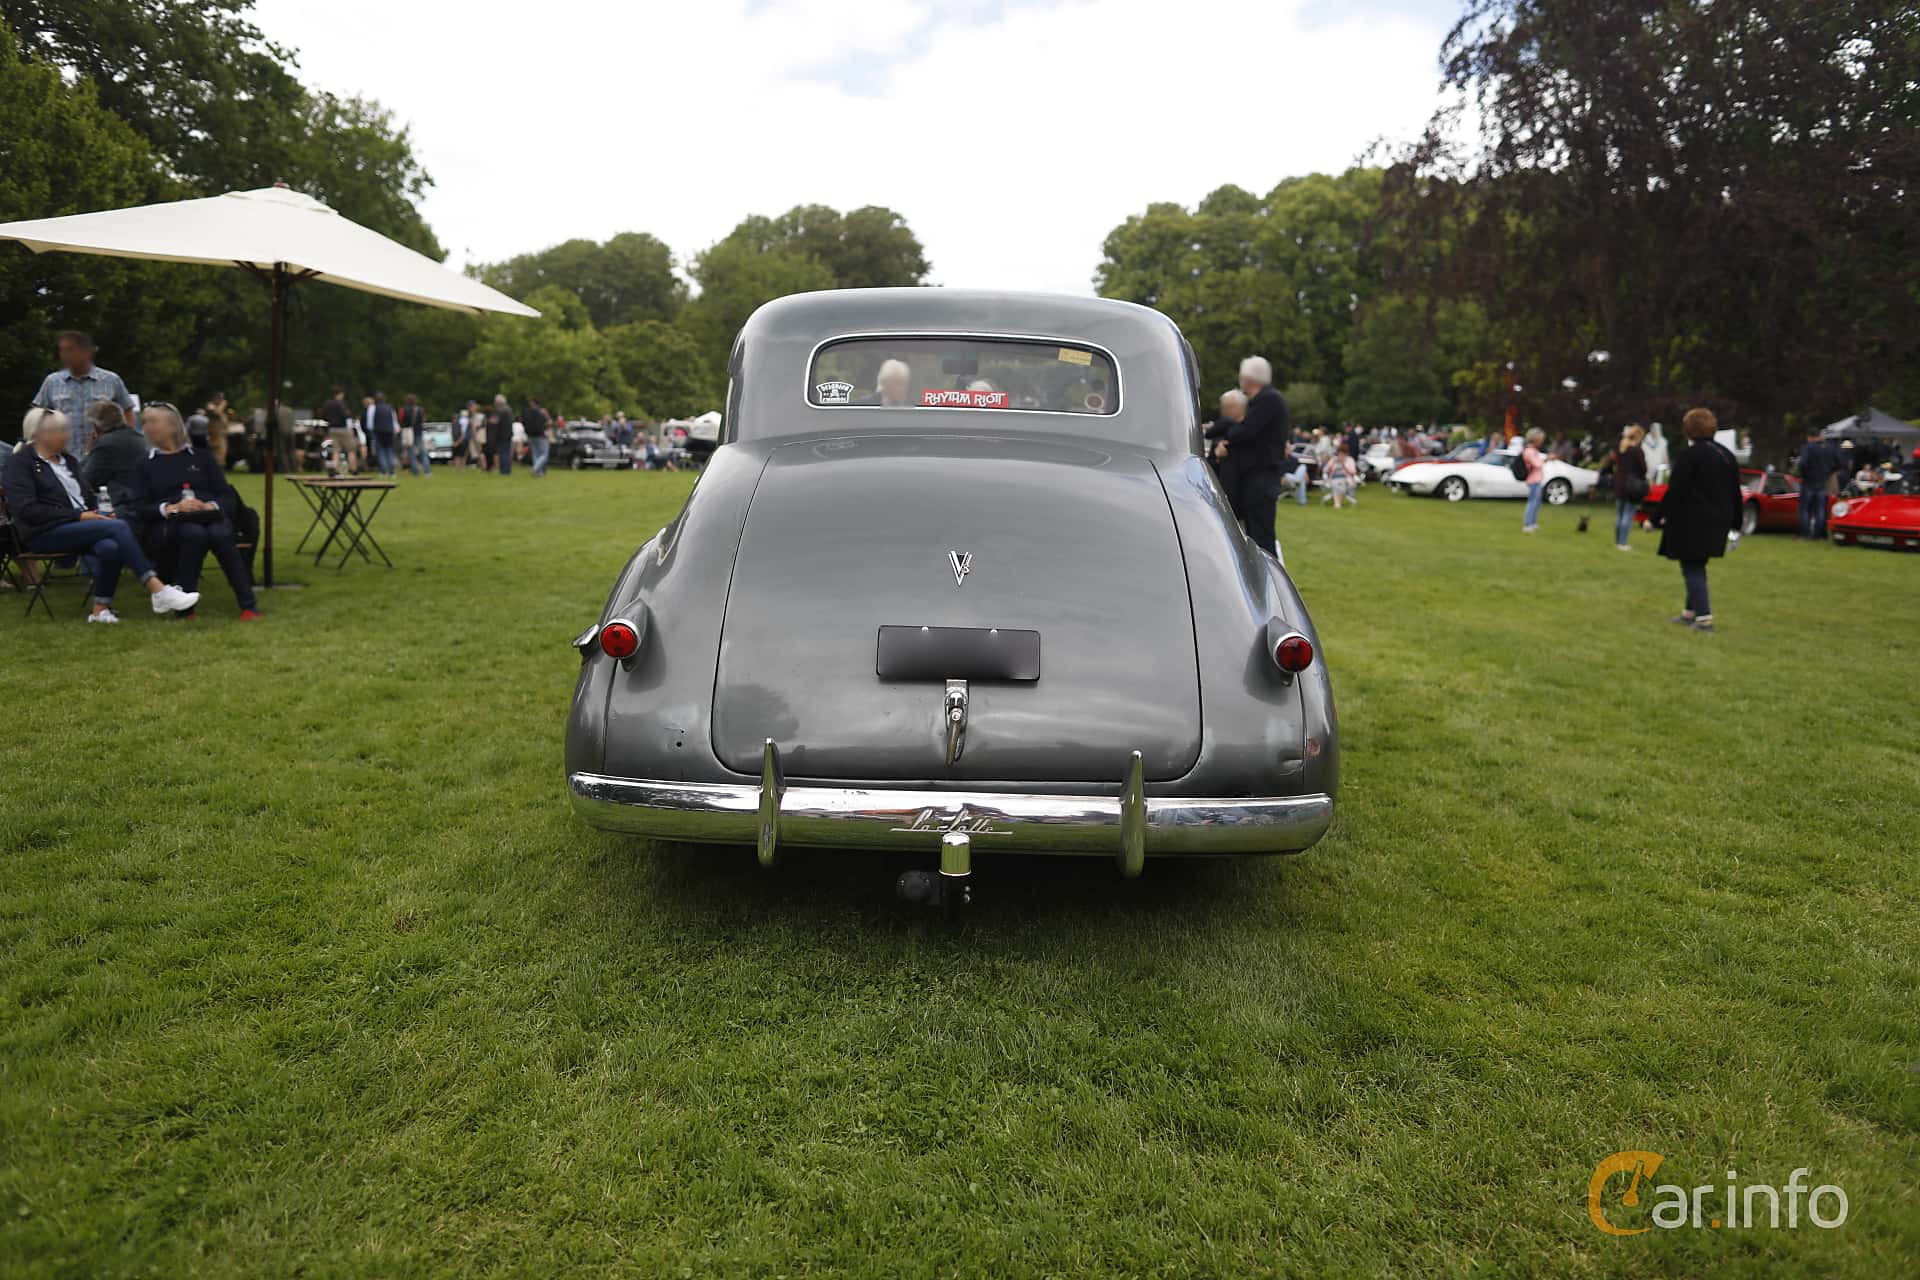 Cadillac LaSalle Coupé 5.3 Manual, 125hp, 1939 at Sofiero Classic 2019